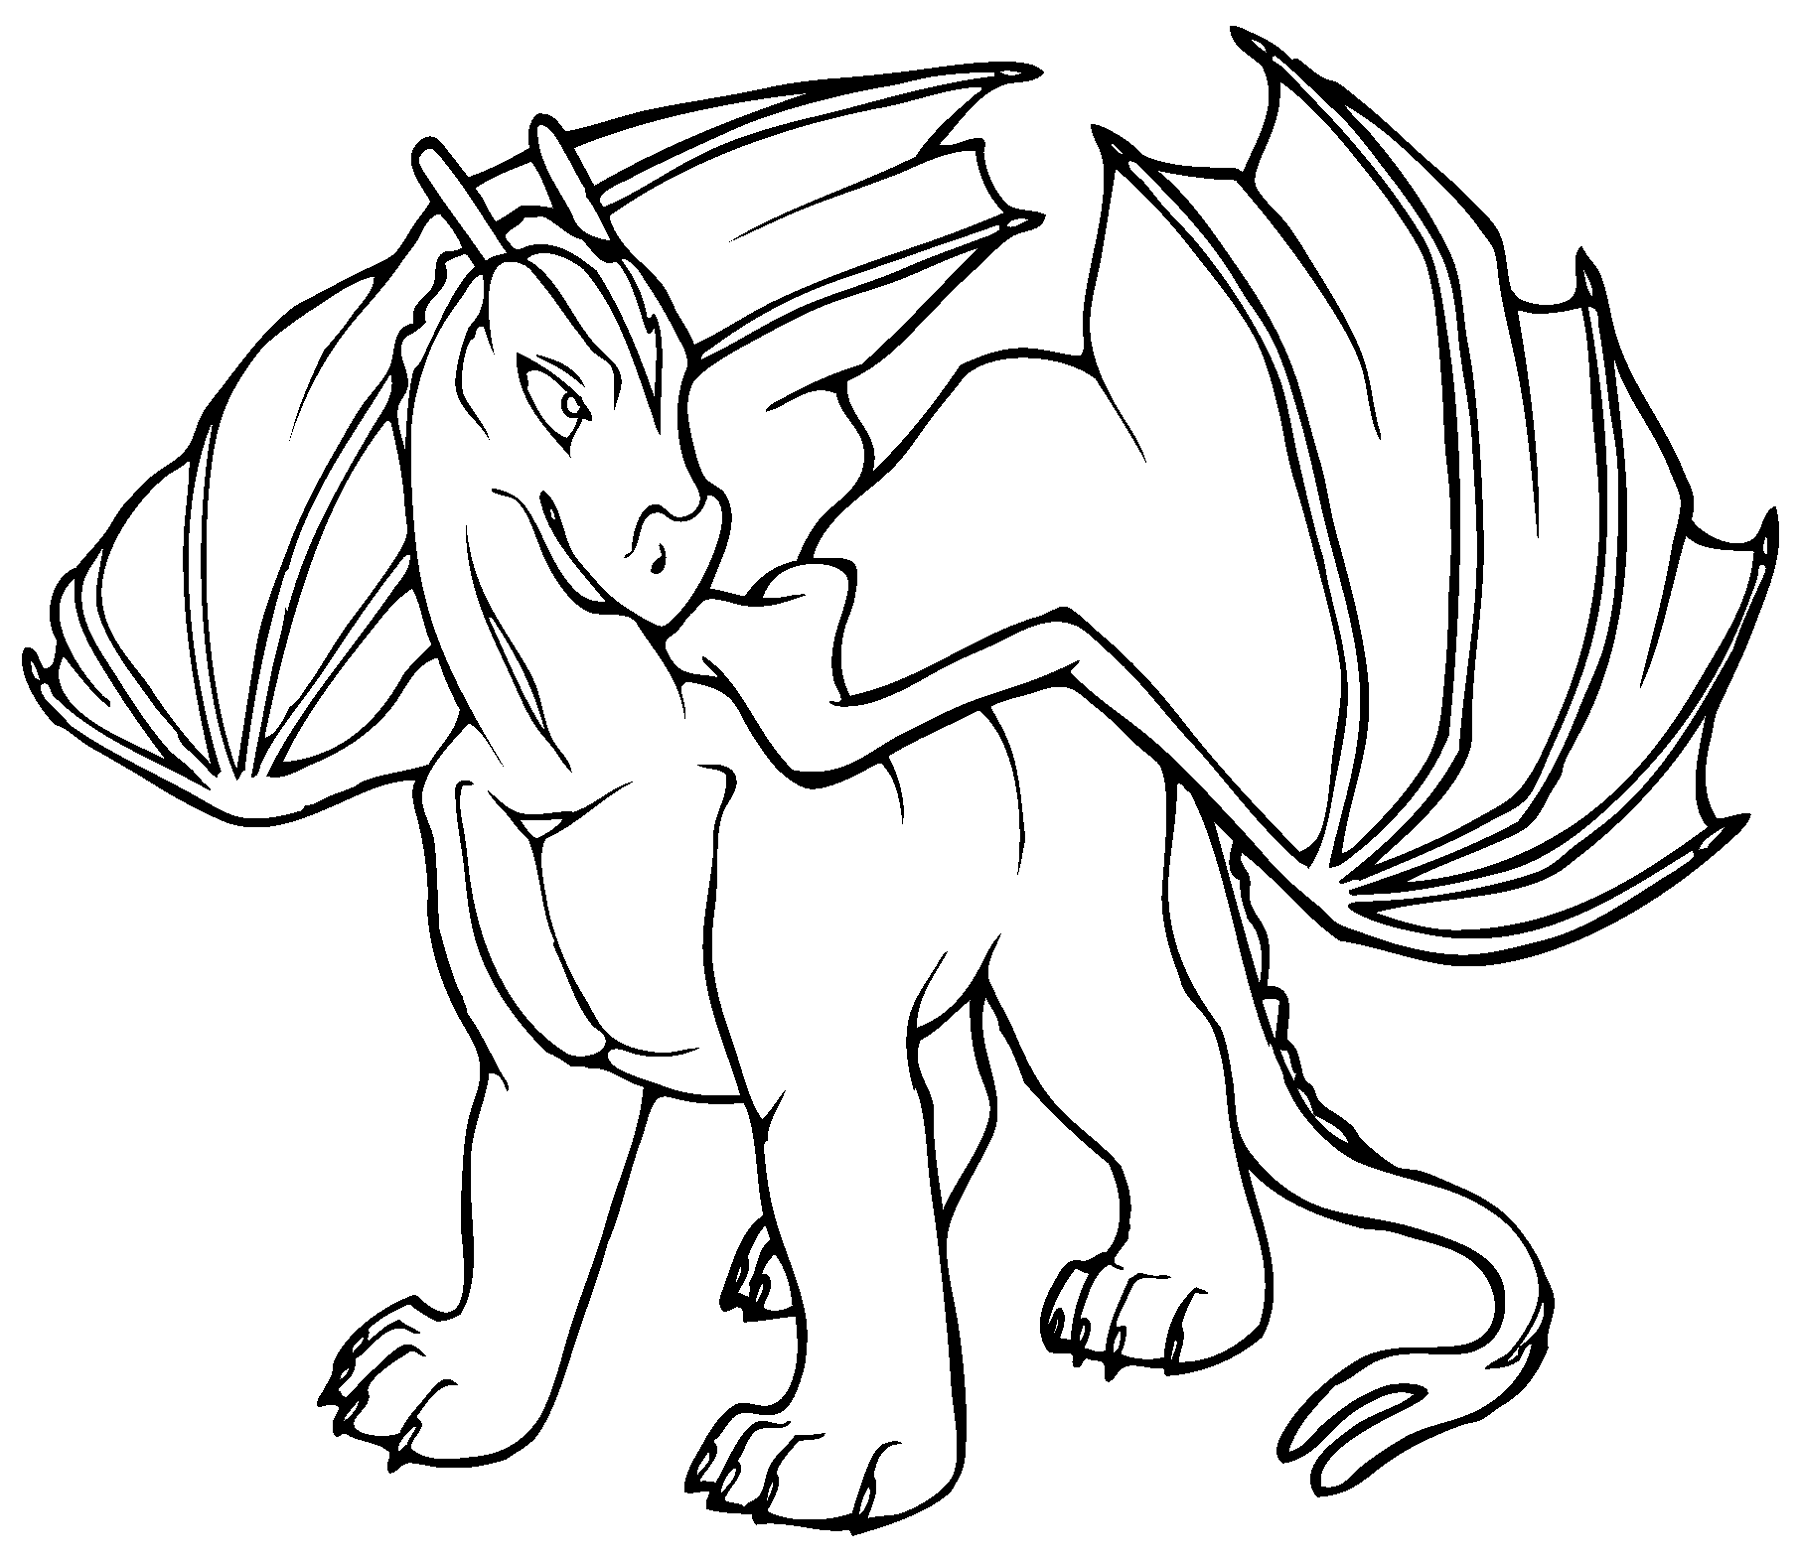 Printable dragon pictures